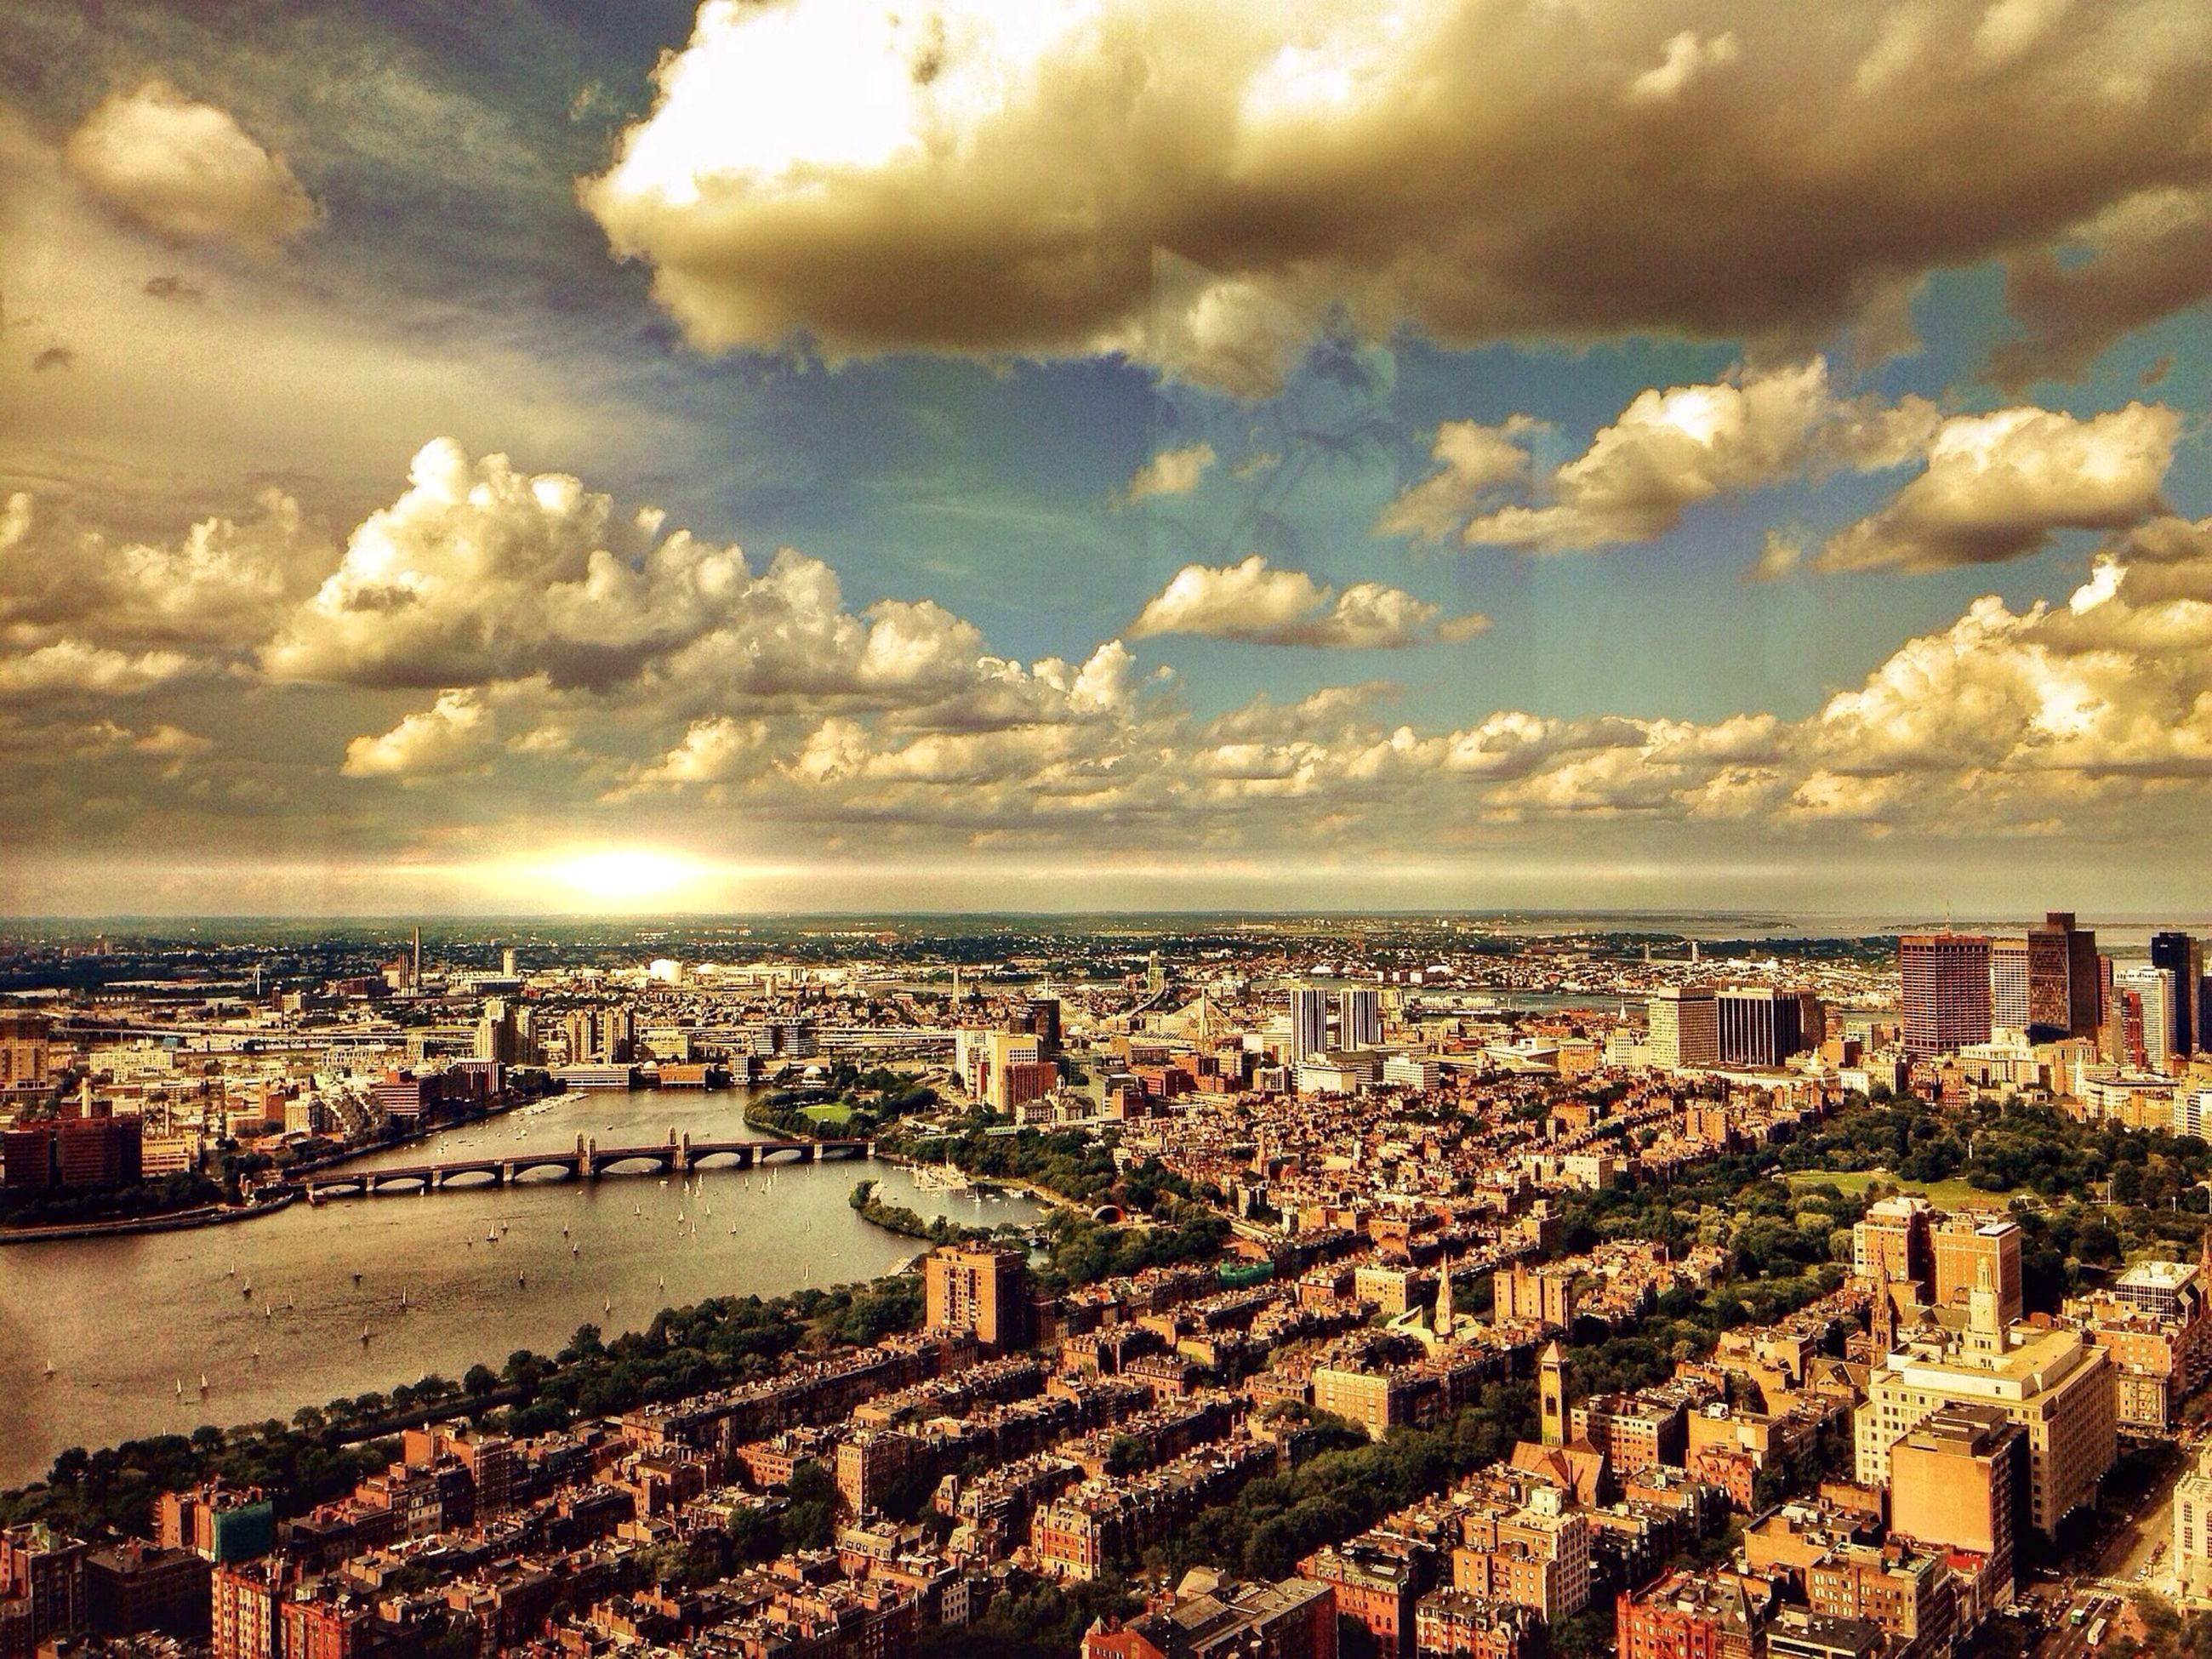 cityscape, architecture, building exterior, built structure, city, sky, cloud - sky, crowded, high angle view, residential district, residential building, sunset, cloudy, cloud, residential structure, river, city life, water, sea, aerial view